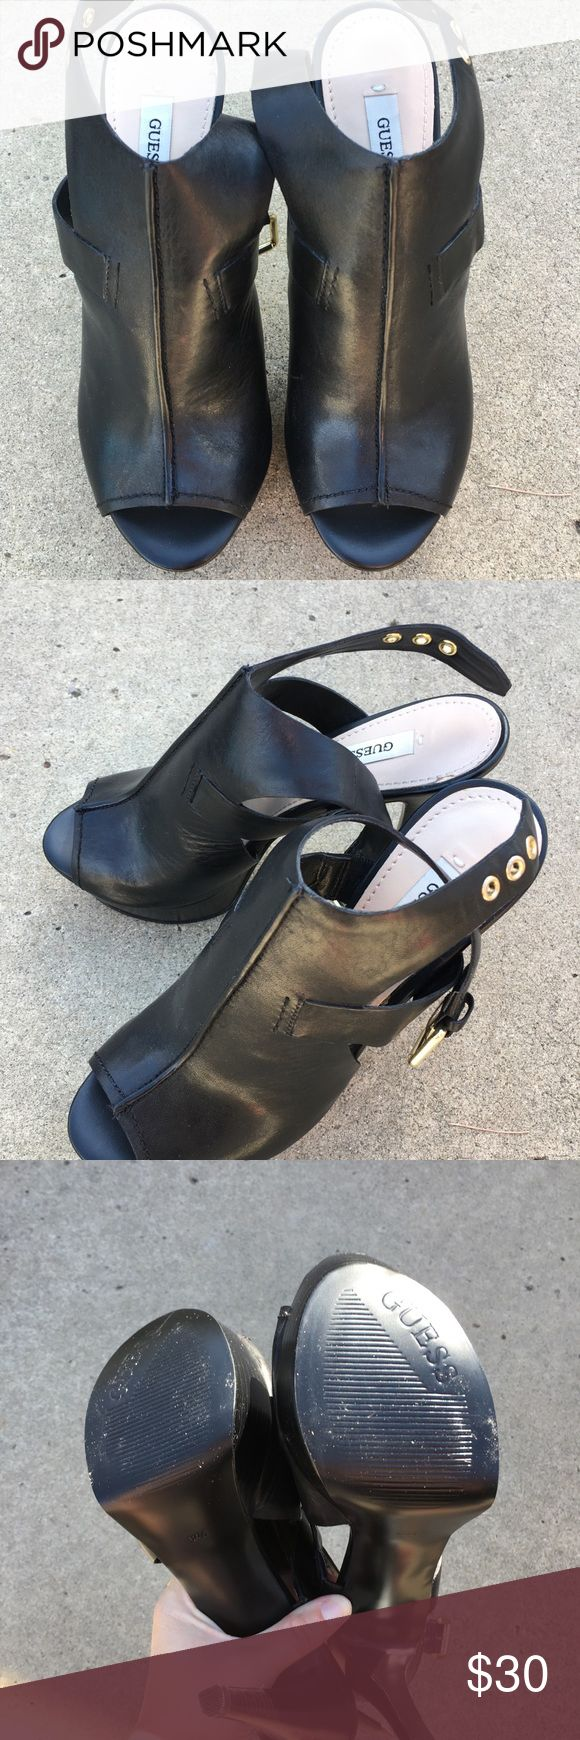 GUESS HEELS GUESS BLACK HEELS, IN GREAT CONDITION SIZE 6.5. BACK STRAP, HEEL IS ABOUT 5 INCHES Guess Shoes Heels